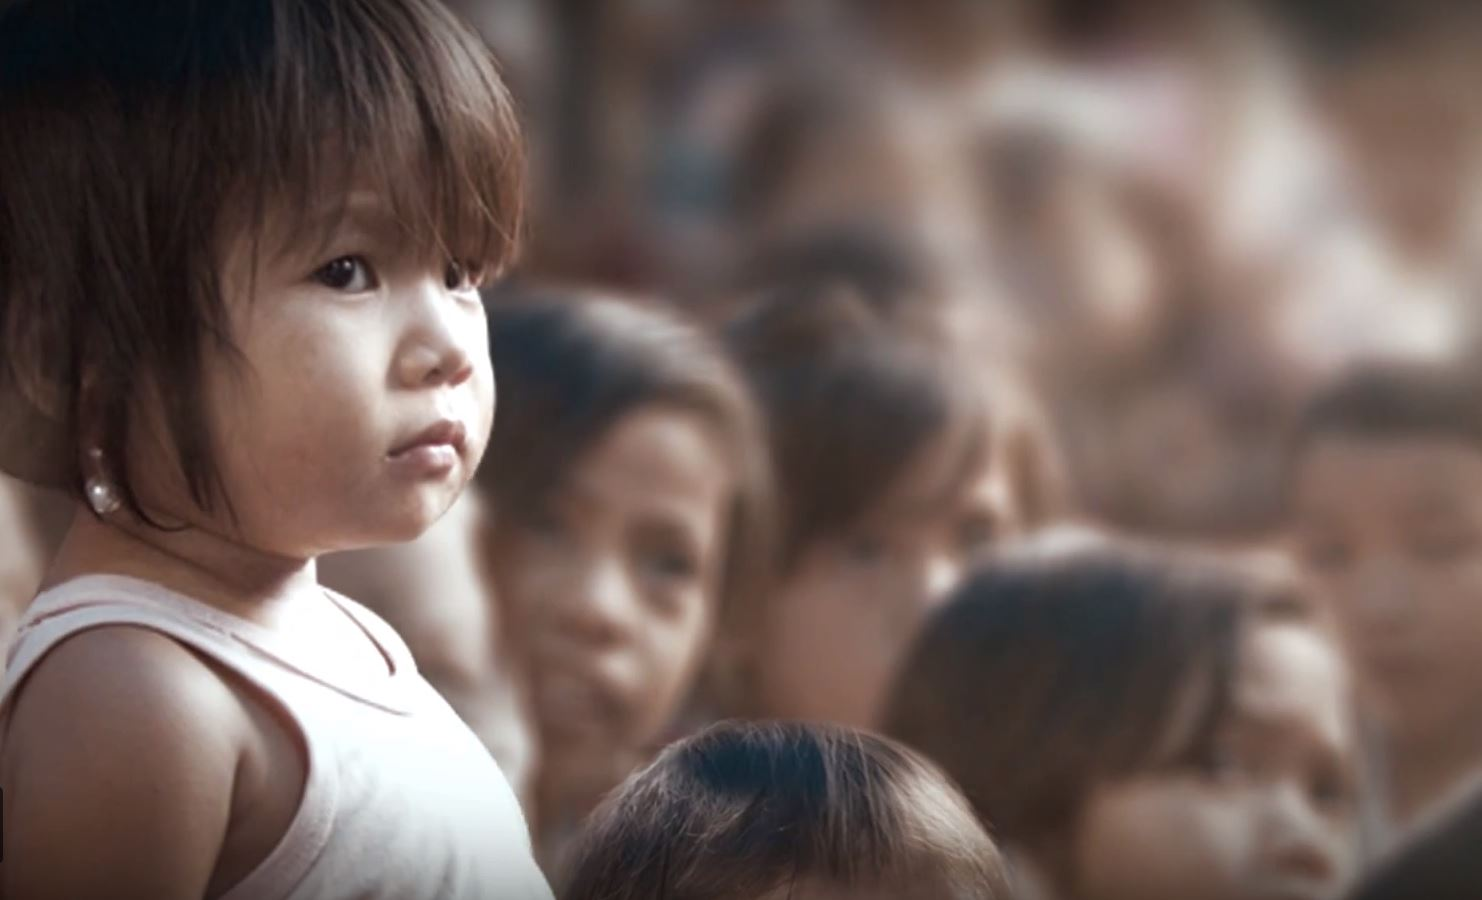 How You Can Help Children in Crisis